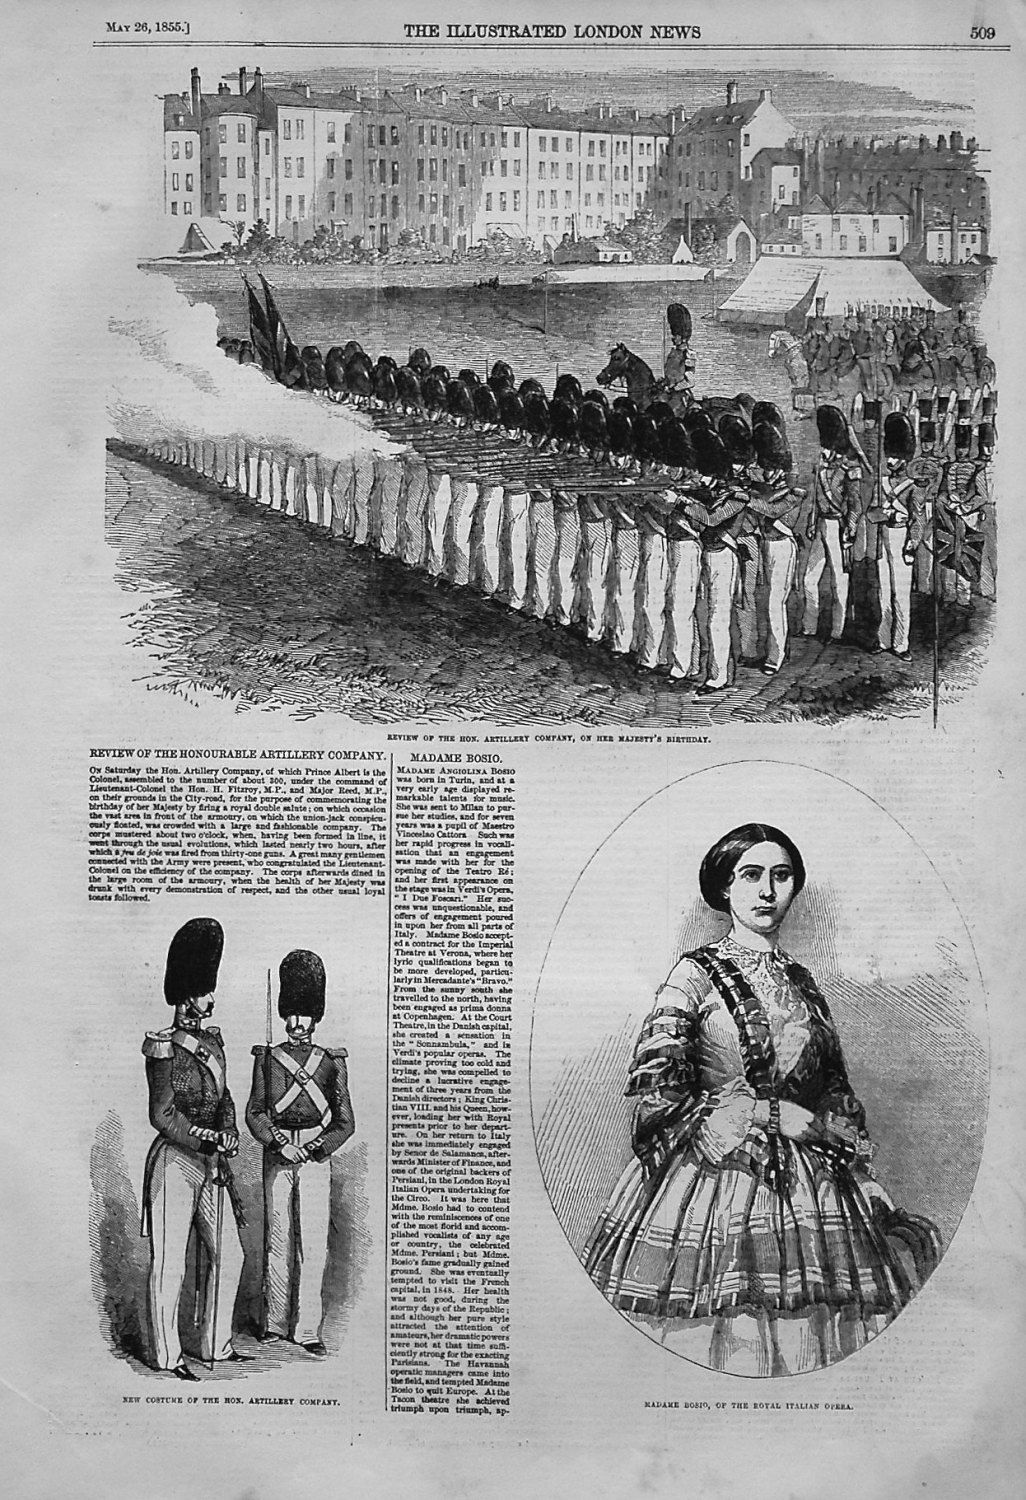 Review of the Honourable Artillery Company. 1855